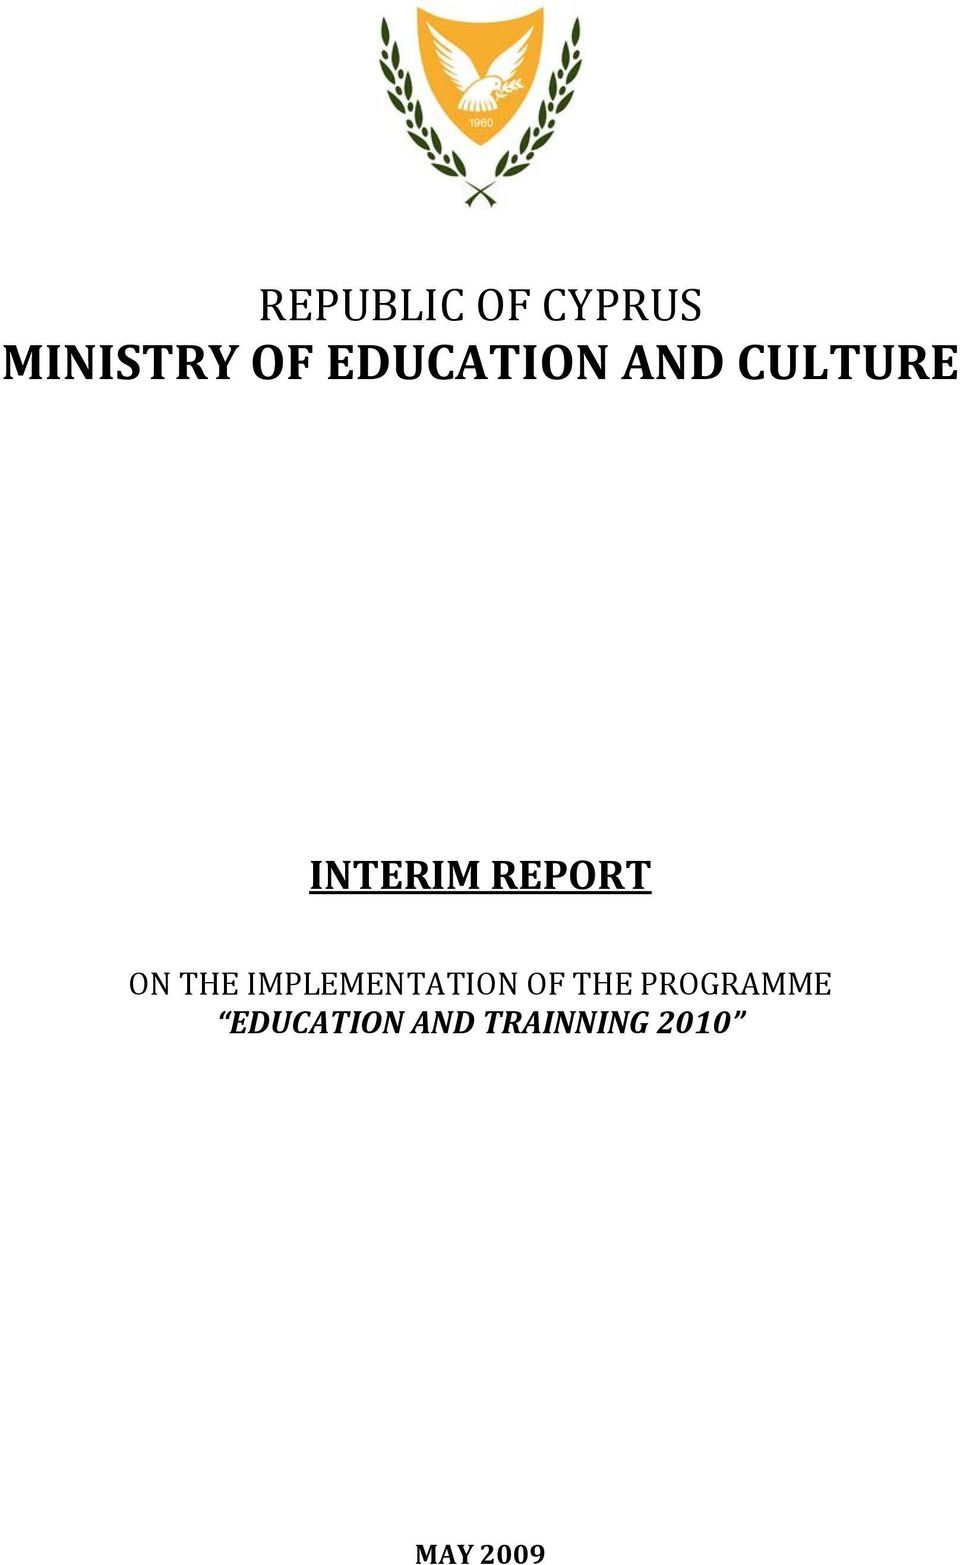 REPORT ON THE IMPLEMENTATION OF THE